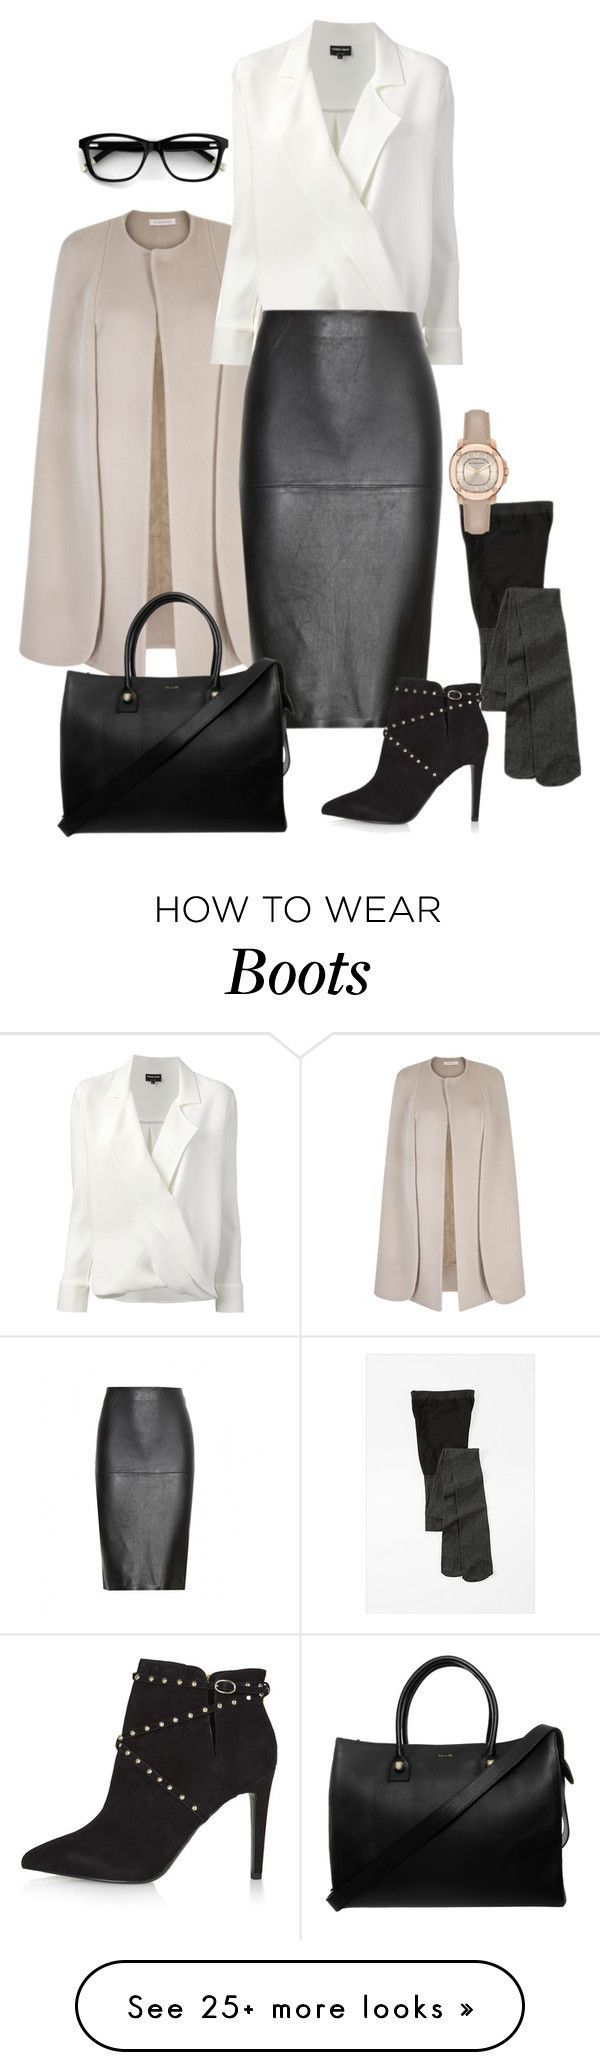 """""""Untitled #166"""" by sandystyle888 on Polyvore featuring Giorgio Armani, By Malene Birger, Topshop, Paul & Joe and Burberry – Skirt The Ceiling 